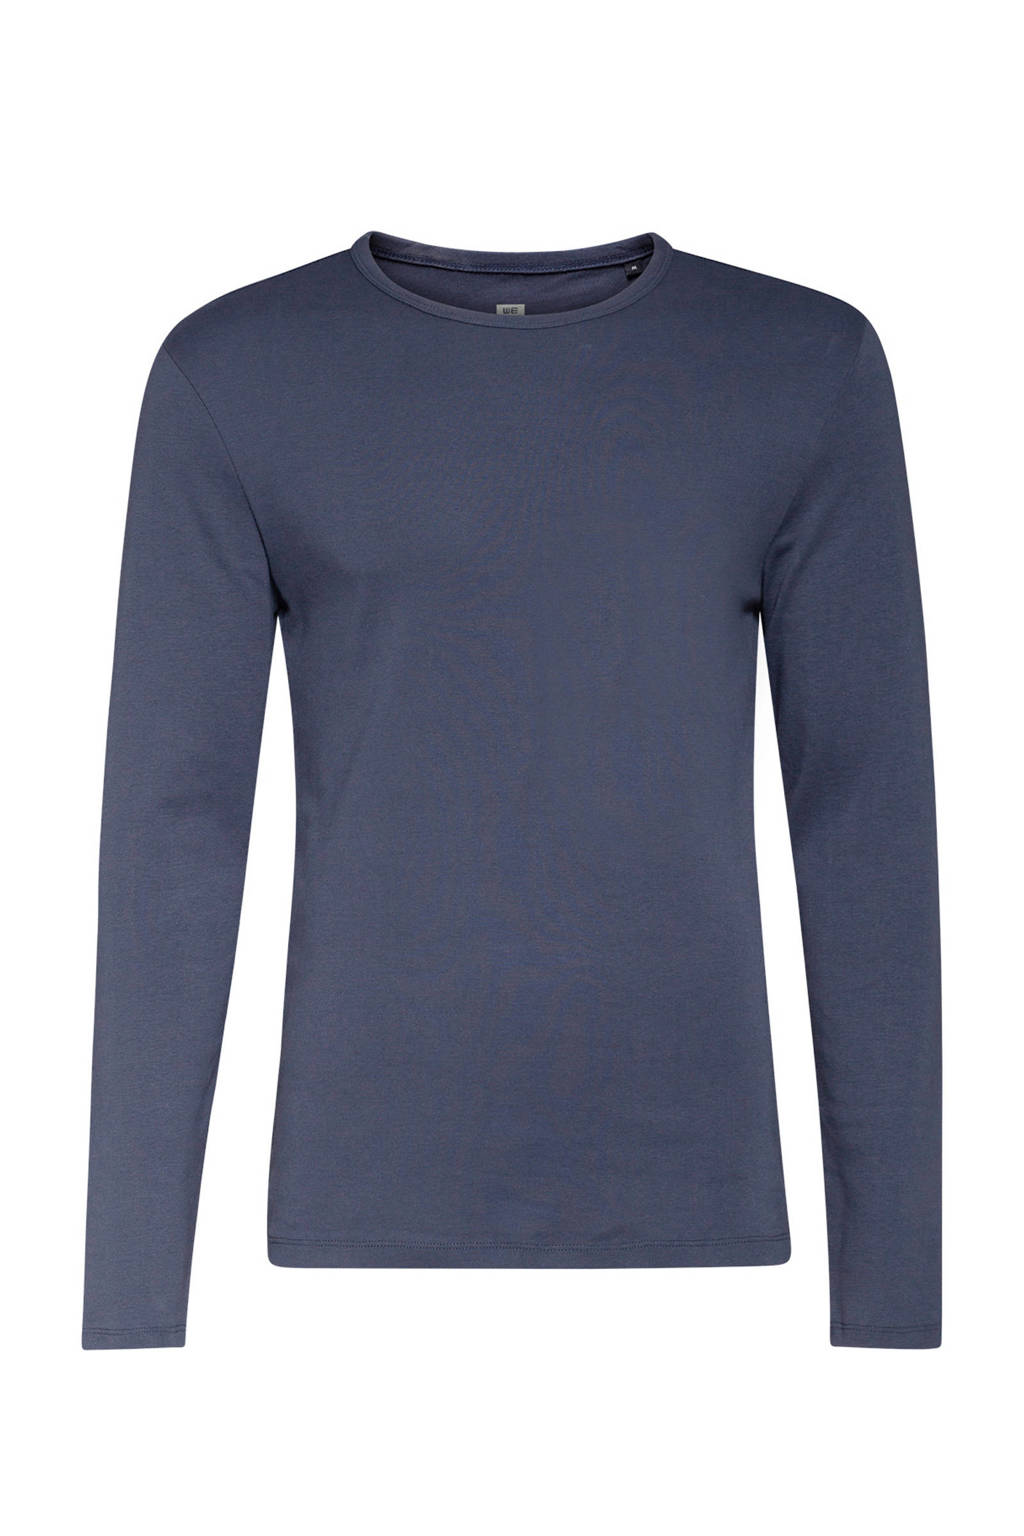 WE Fashion T-shirt, Blauw